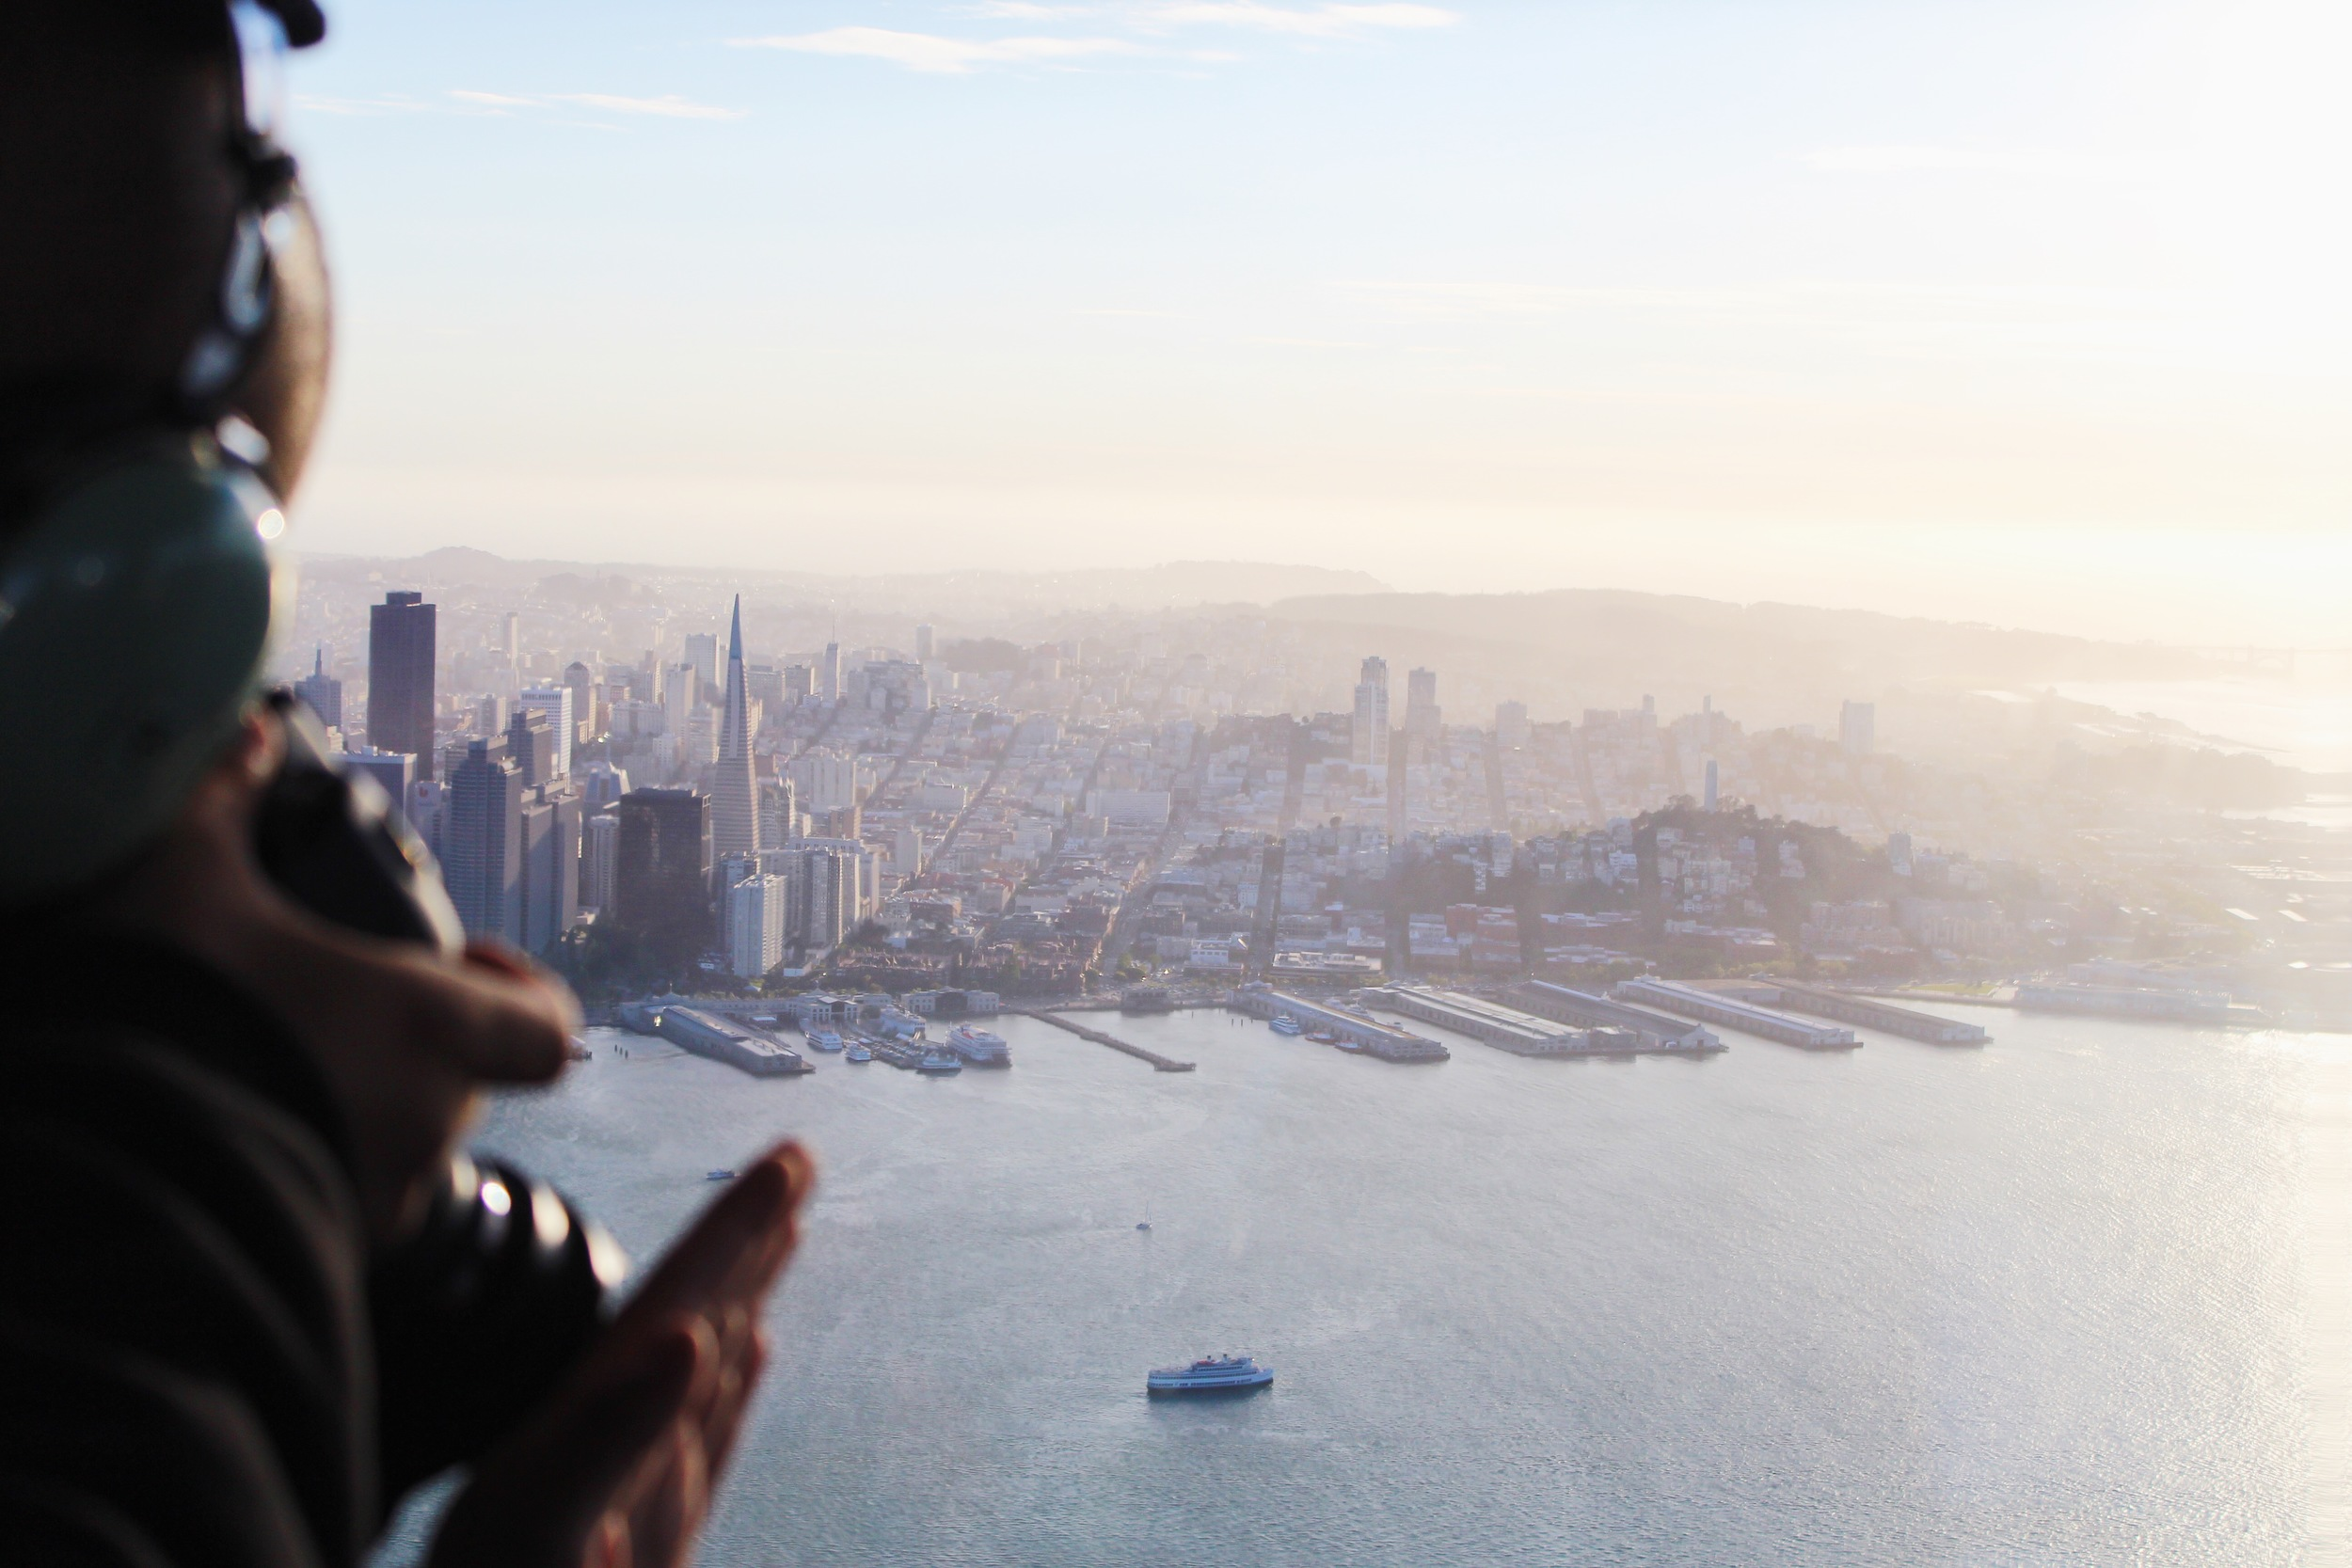 Christian Becerra (@throughthetinylens) taking photos of San Francisco by Catherine Alyce